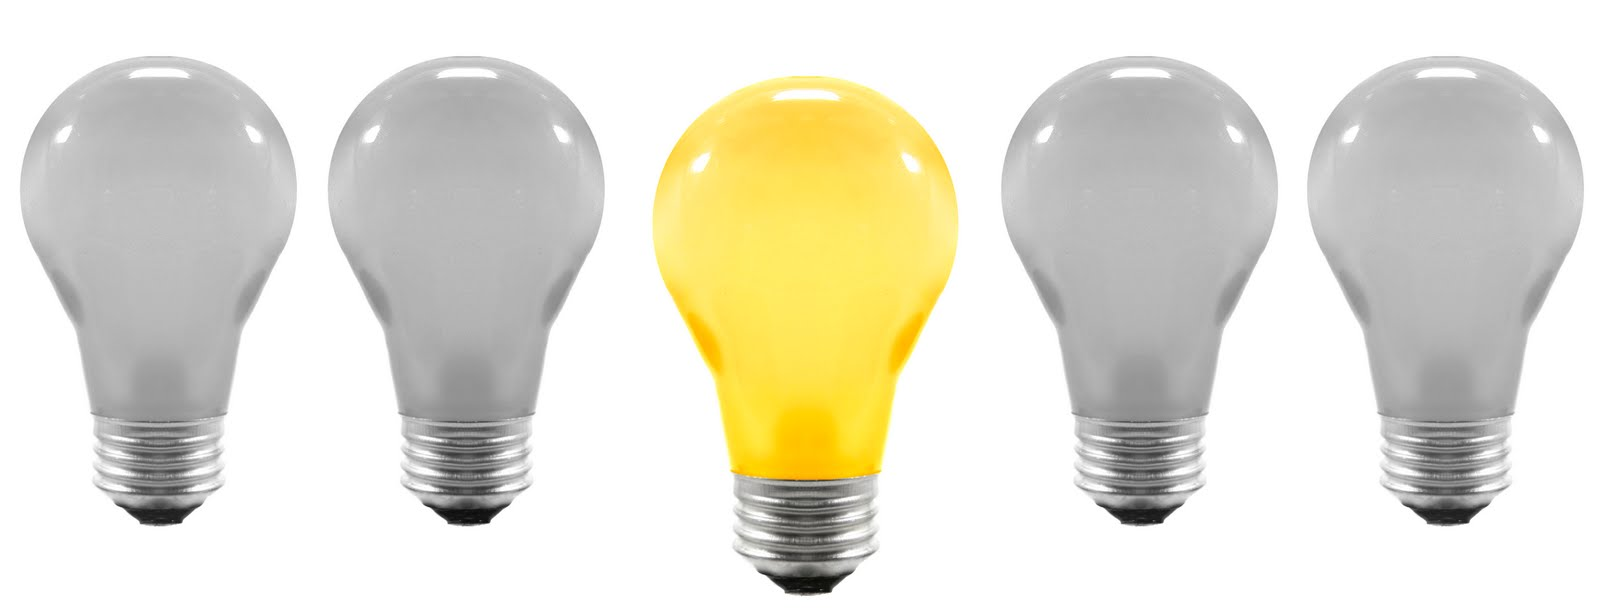 Bright Idea Light Bulb Clip Art